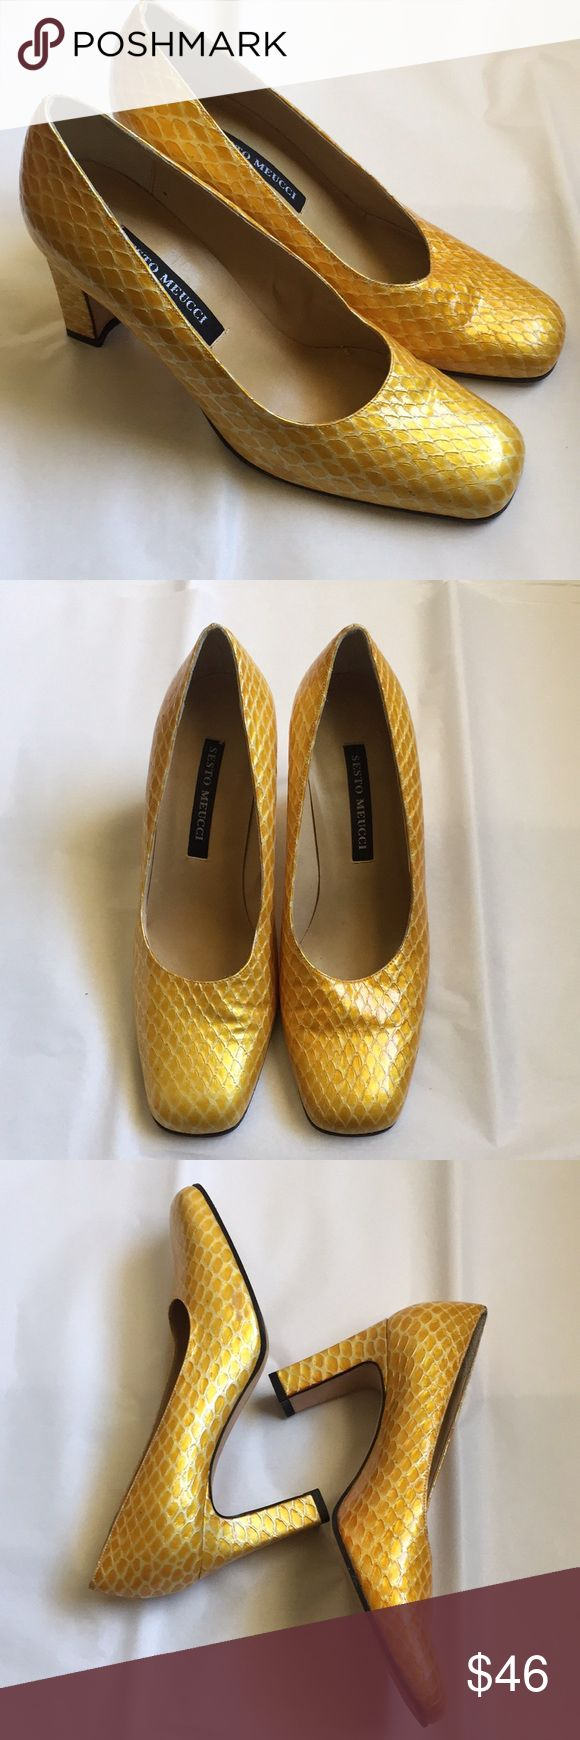 Sesto Meucci snakeskin heels Sesto Meucci snakeskin heels. Glossy lemon yellow leather with block there are some small blue marks on the side of one toe, however these are not noticeable when worn. Otherwise in great condition. Made in Italy. Size 7. Sesto Meucci Shoes Heels